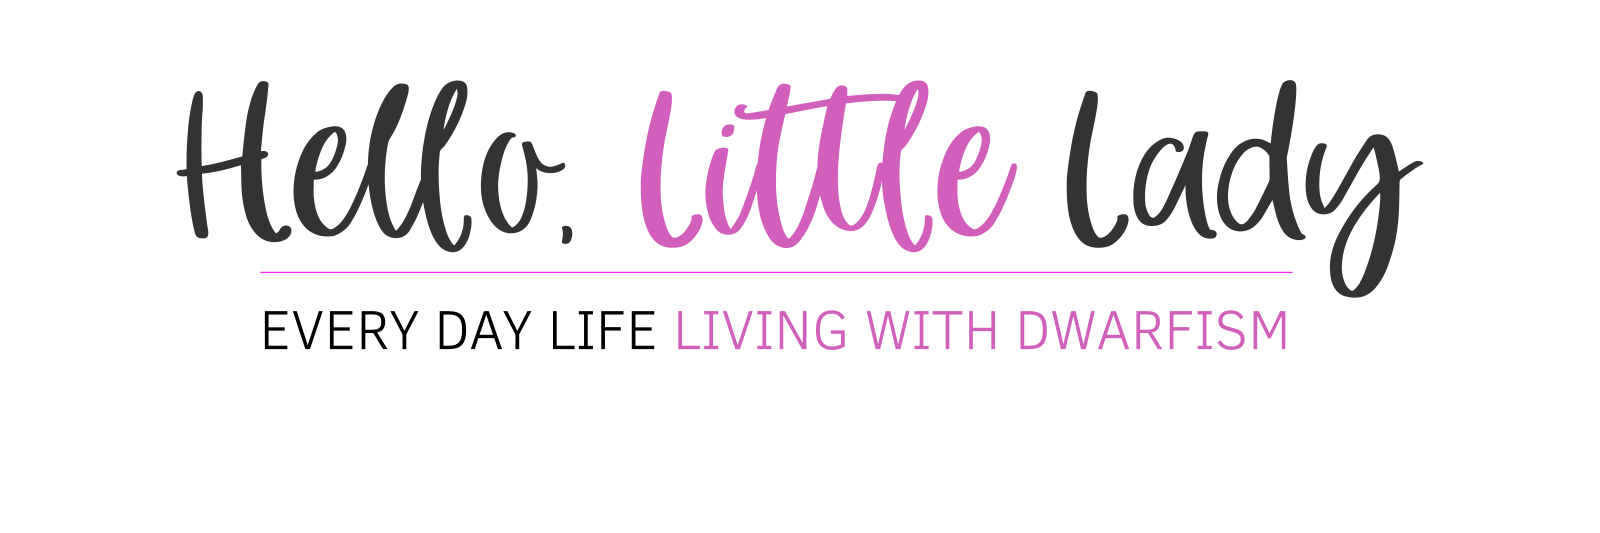 Hello, Little Lady - Everyday Life Living with Dwarfism - logo